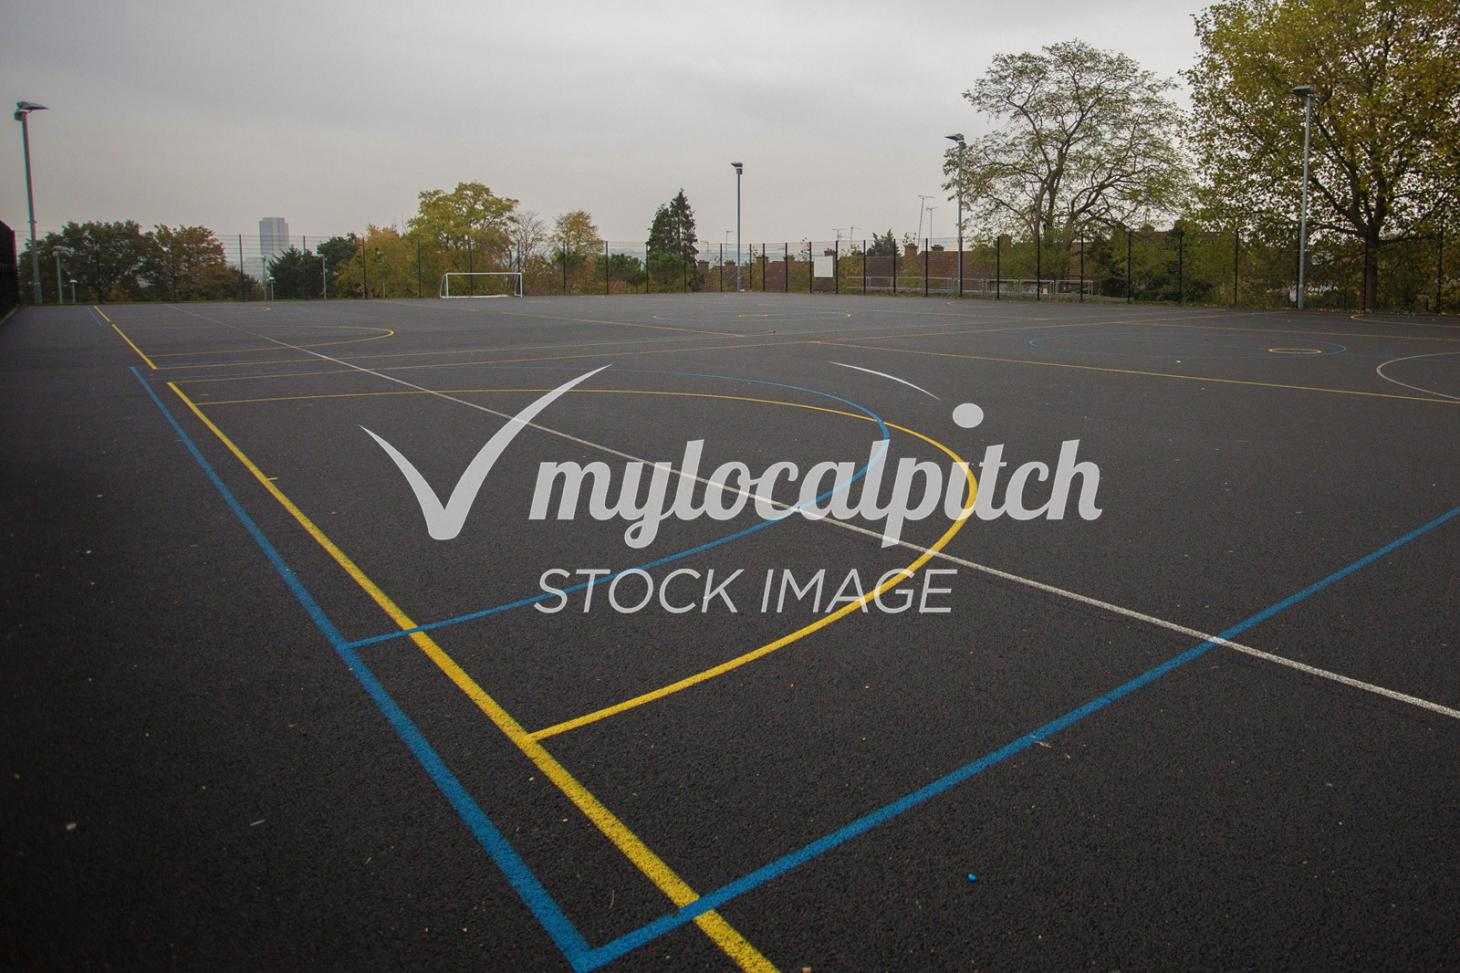 Reynolds Sports Centre 5 a side | Concrete football pitch